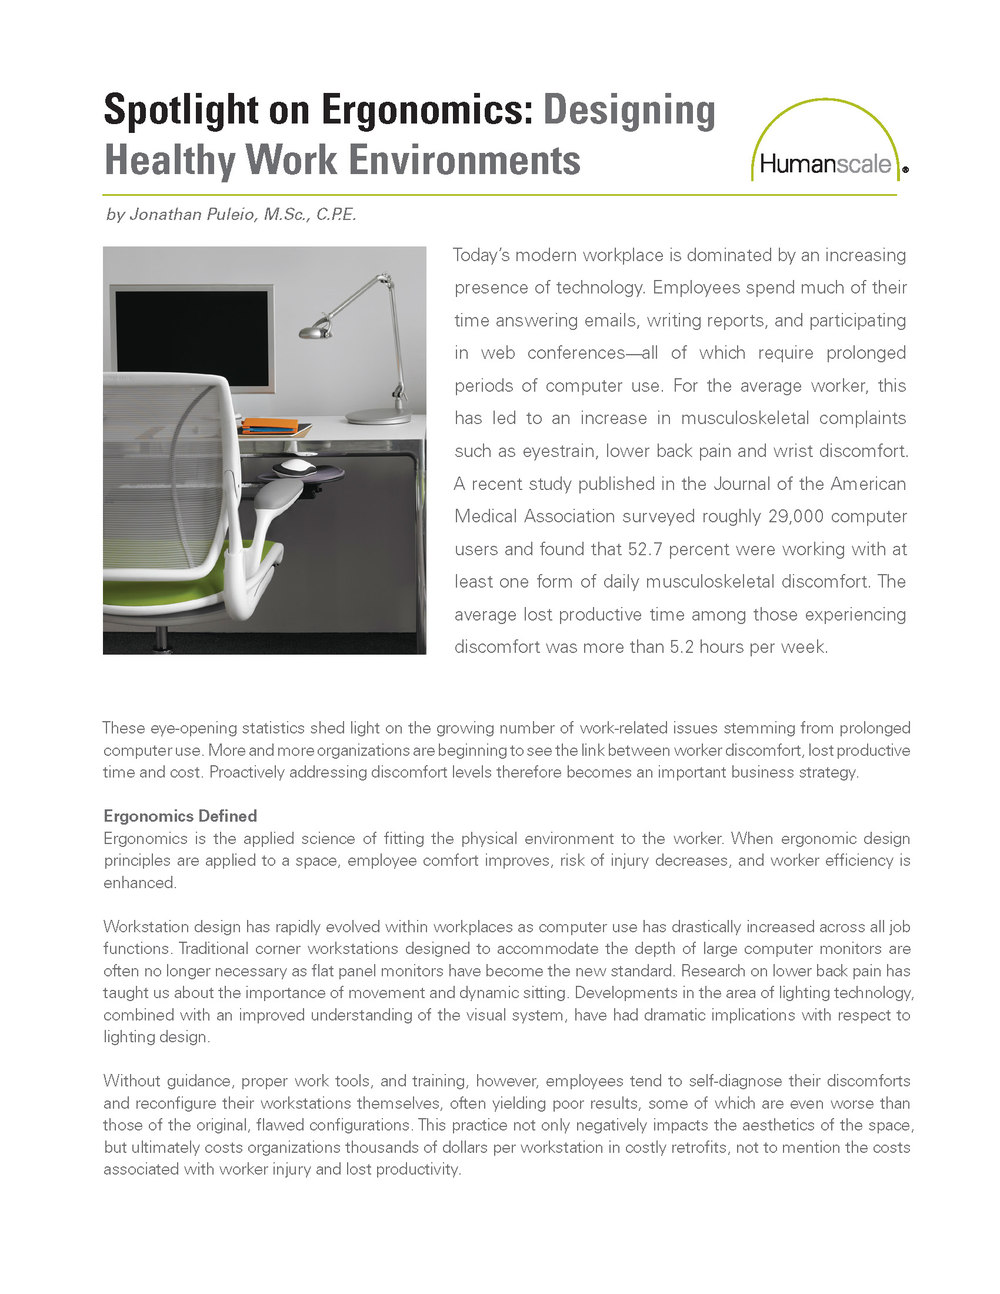 Spotlight on Ergonomics: Designing Healthy Work Environments: courtesy of Humanscale